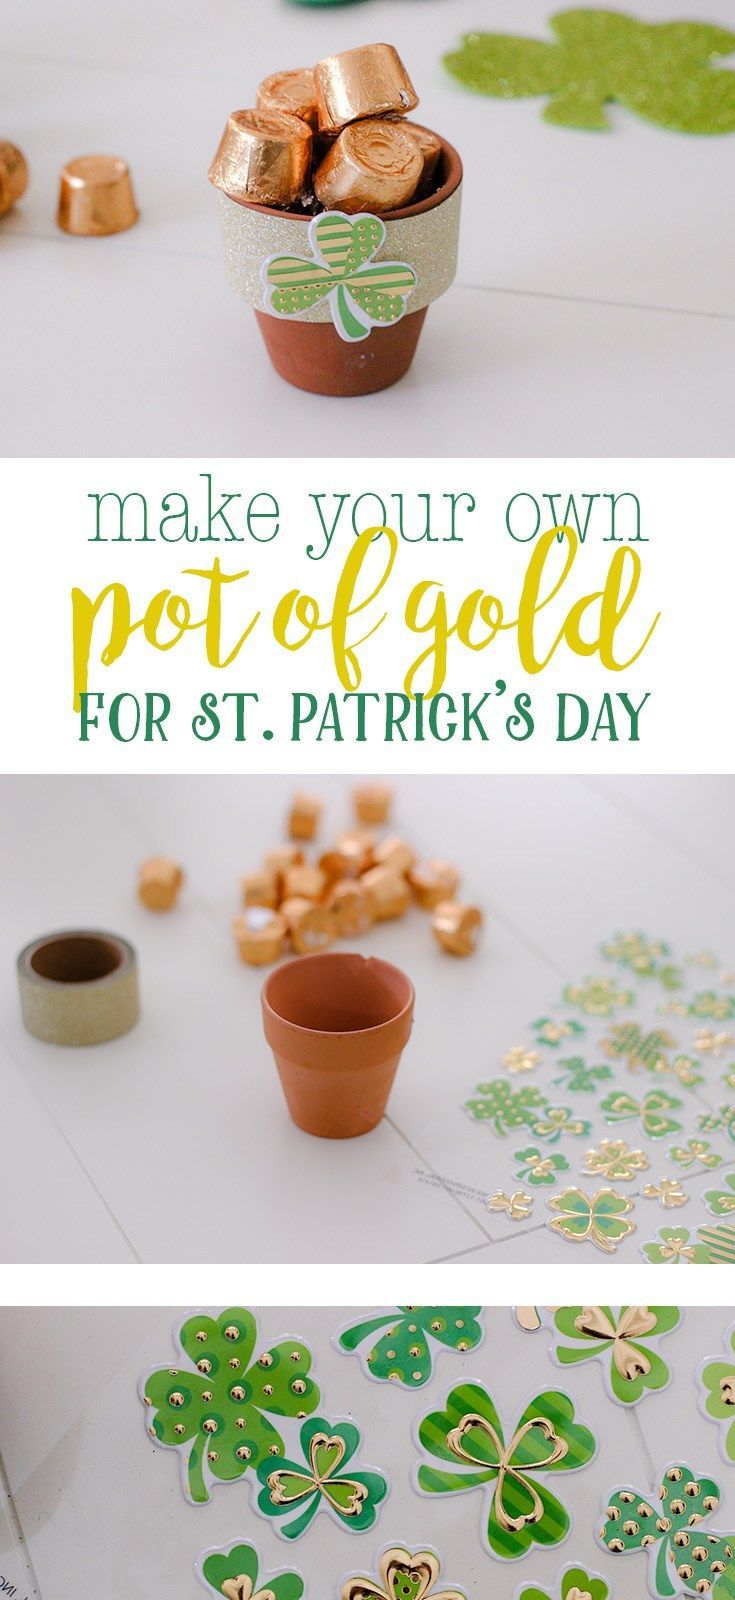 St. Patrick's Day craft Easy DIY for how to make your own pot of gold for St. Patrick's Day #stpatricksday #kidcraft